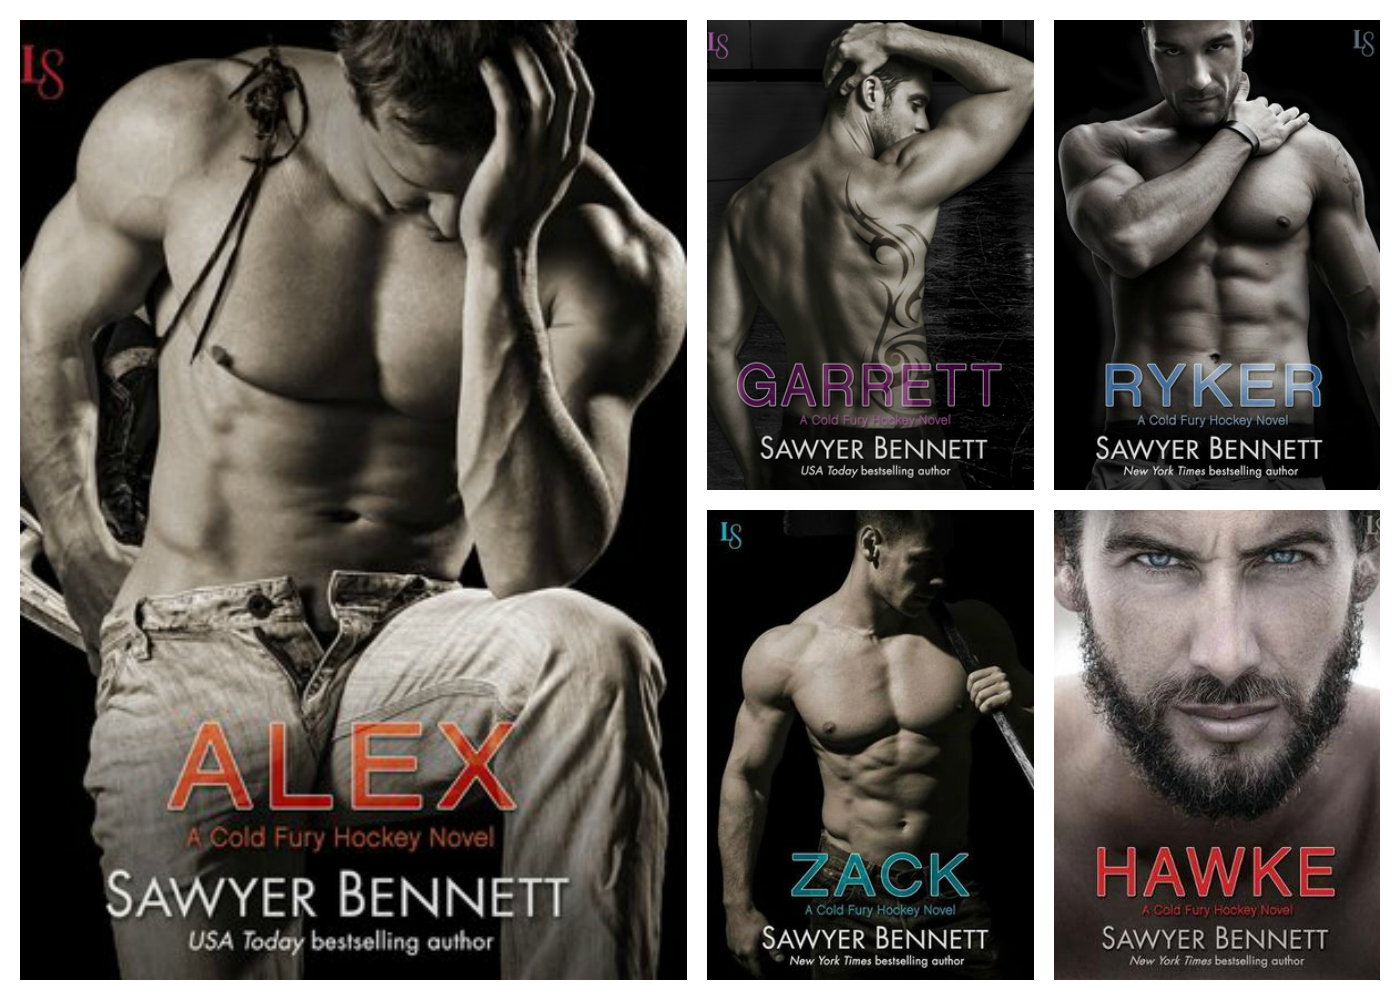 The Cold Fury Hockey series, Sawyer Bennett